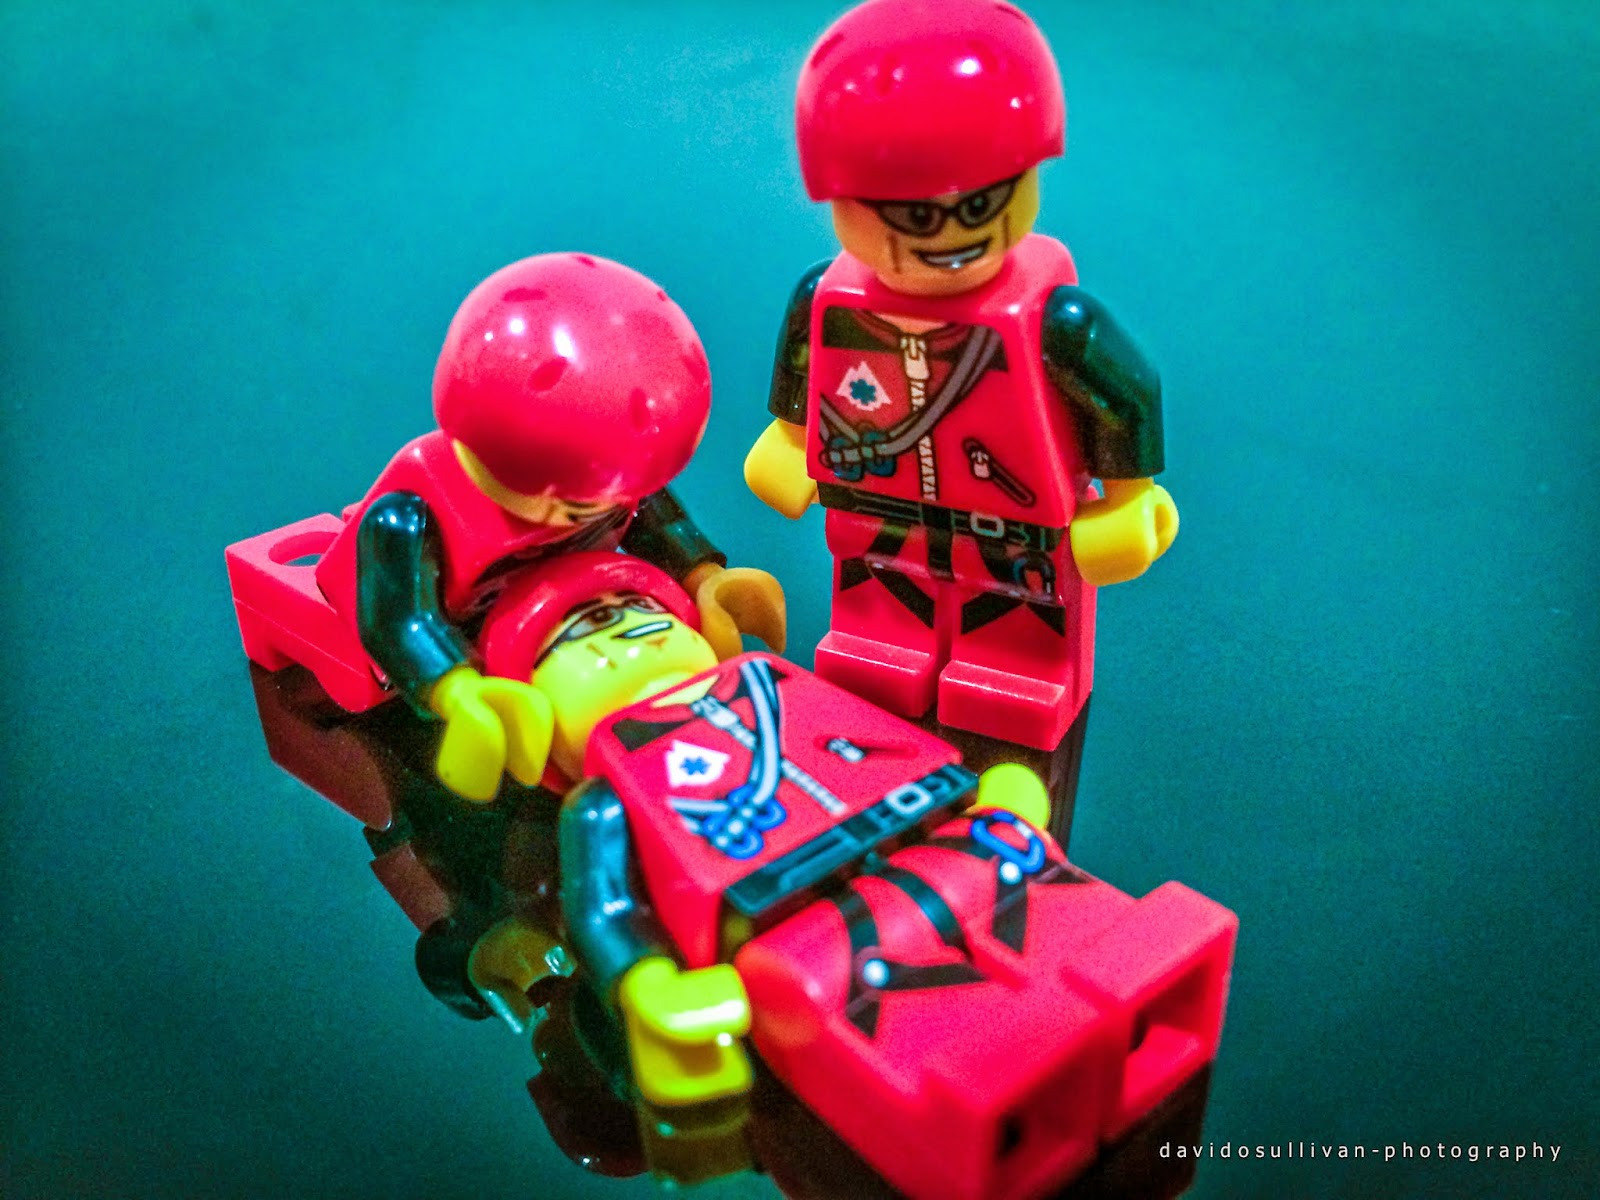 Two Lego Mountain Rescue figures practising Casualty Care on a third figure